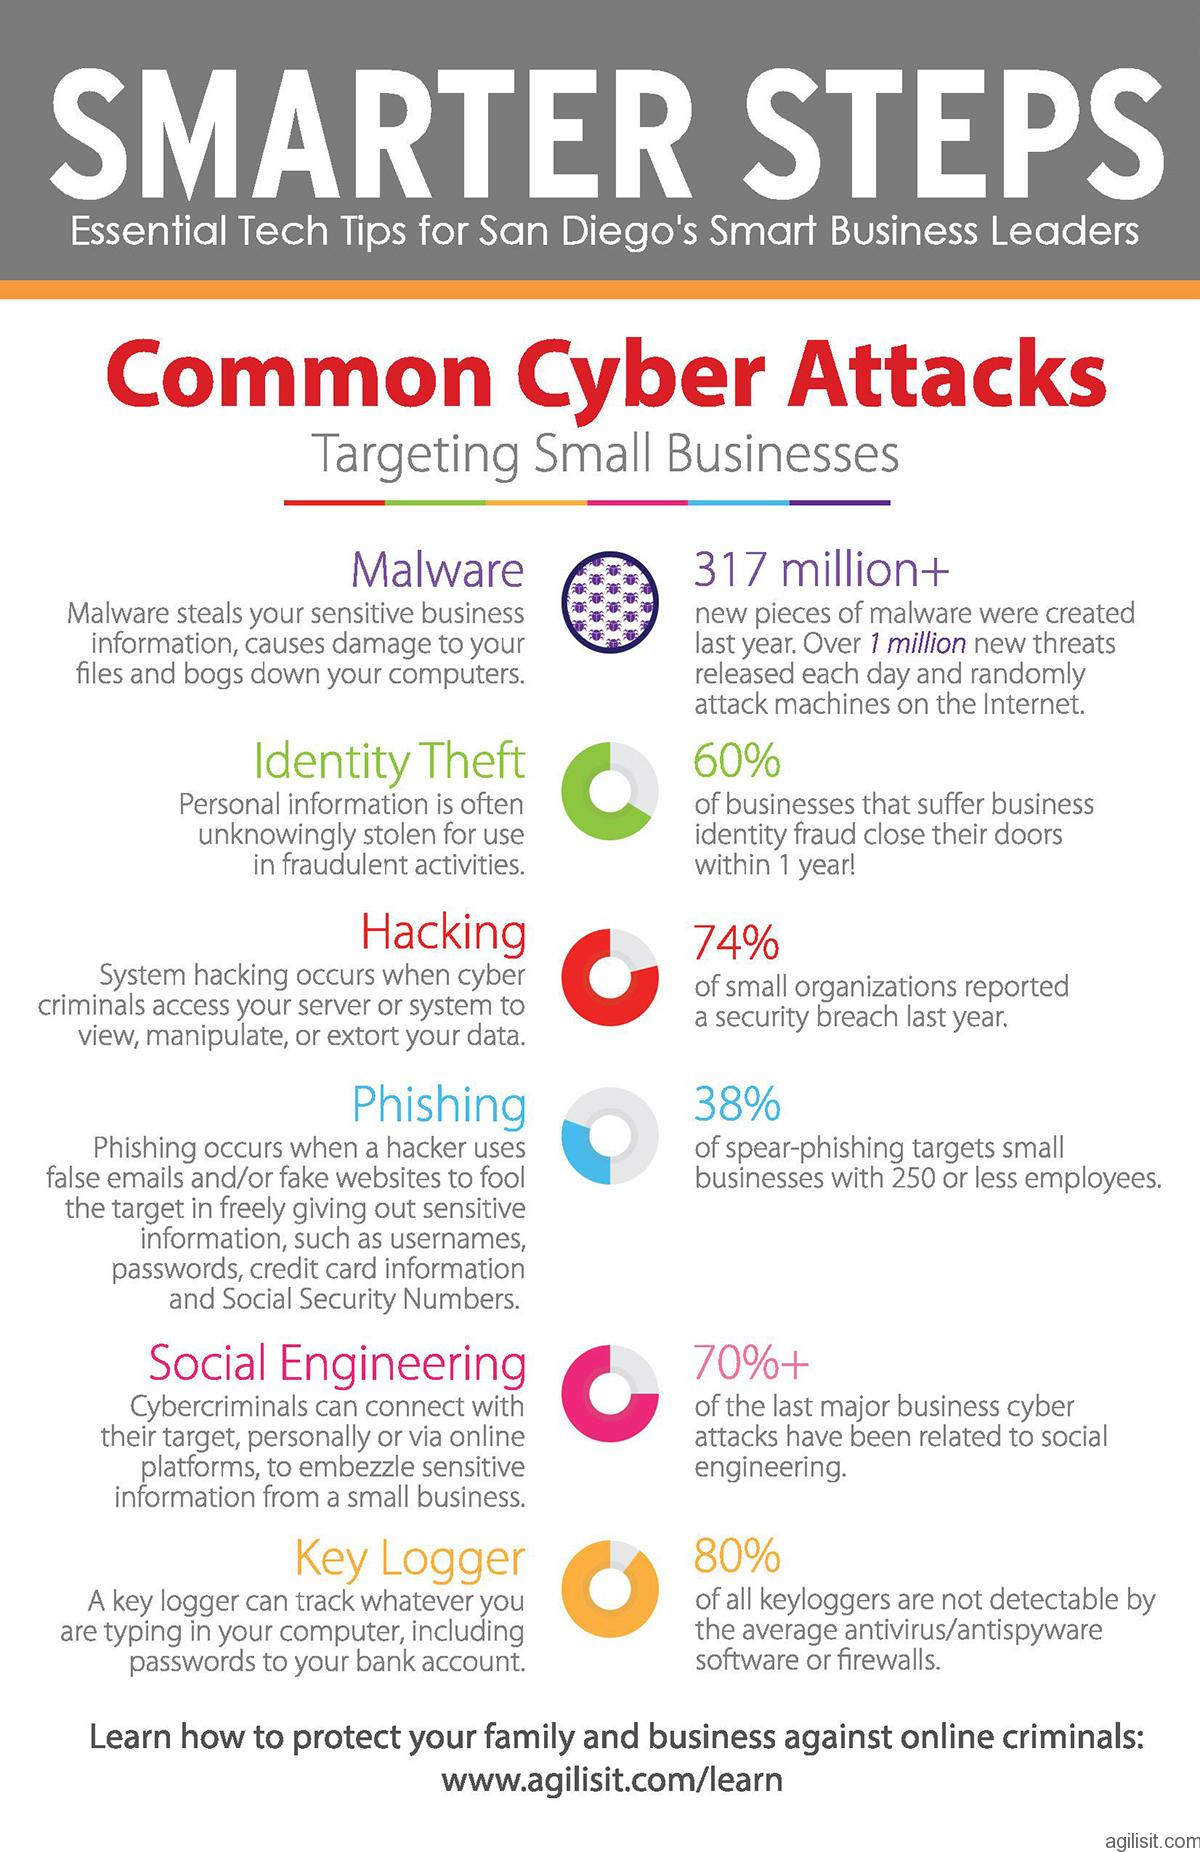 AgilisIT Newsletter Highlight: Common Cyber Attacks Against Small Businesses